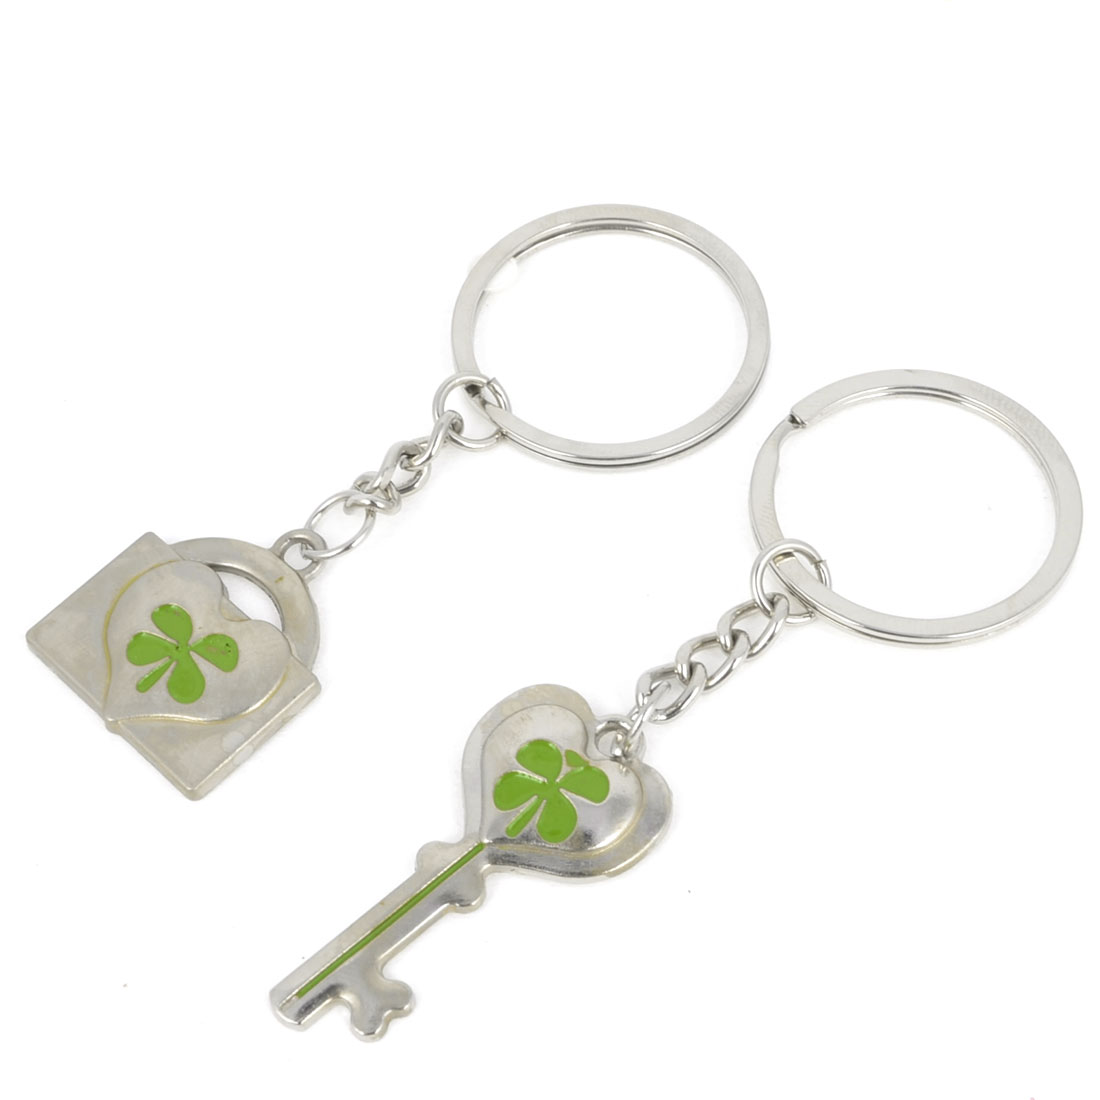 Pair Padlock Key Design Clover Decor Dangle Pendant Keychain Silver Tone